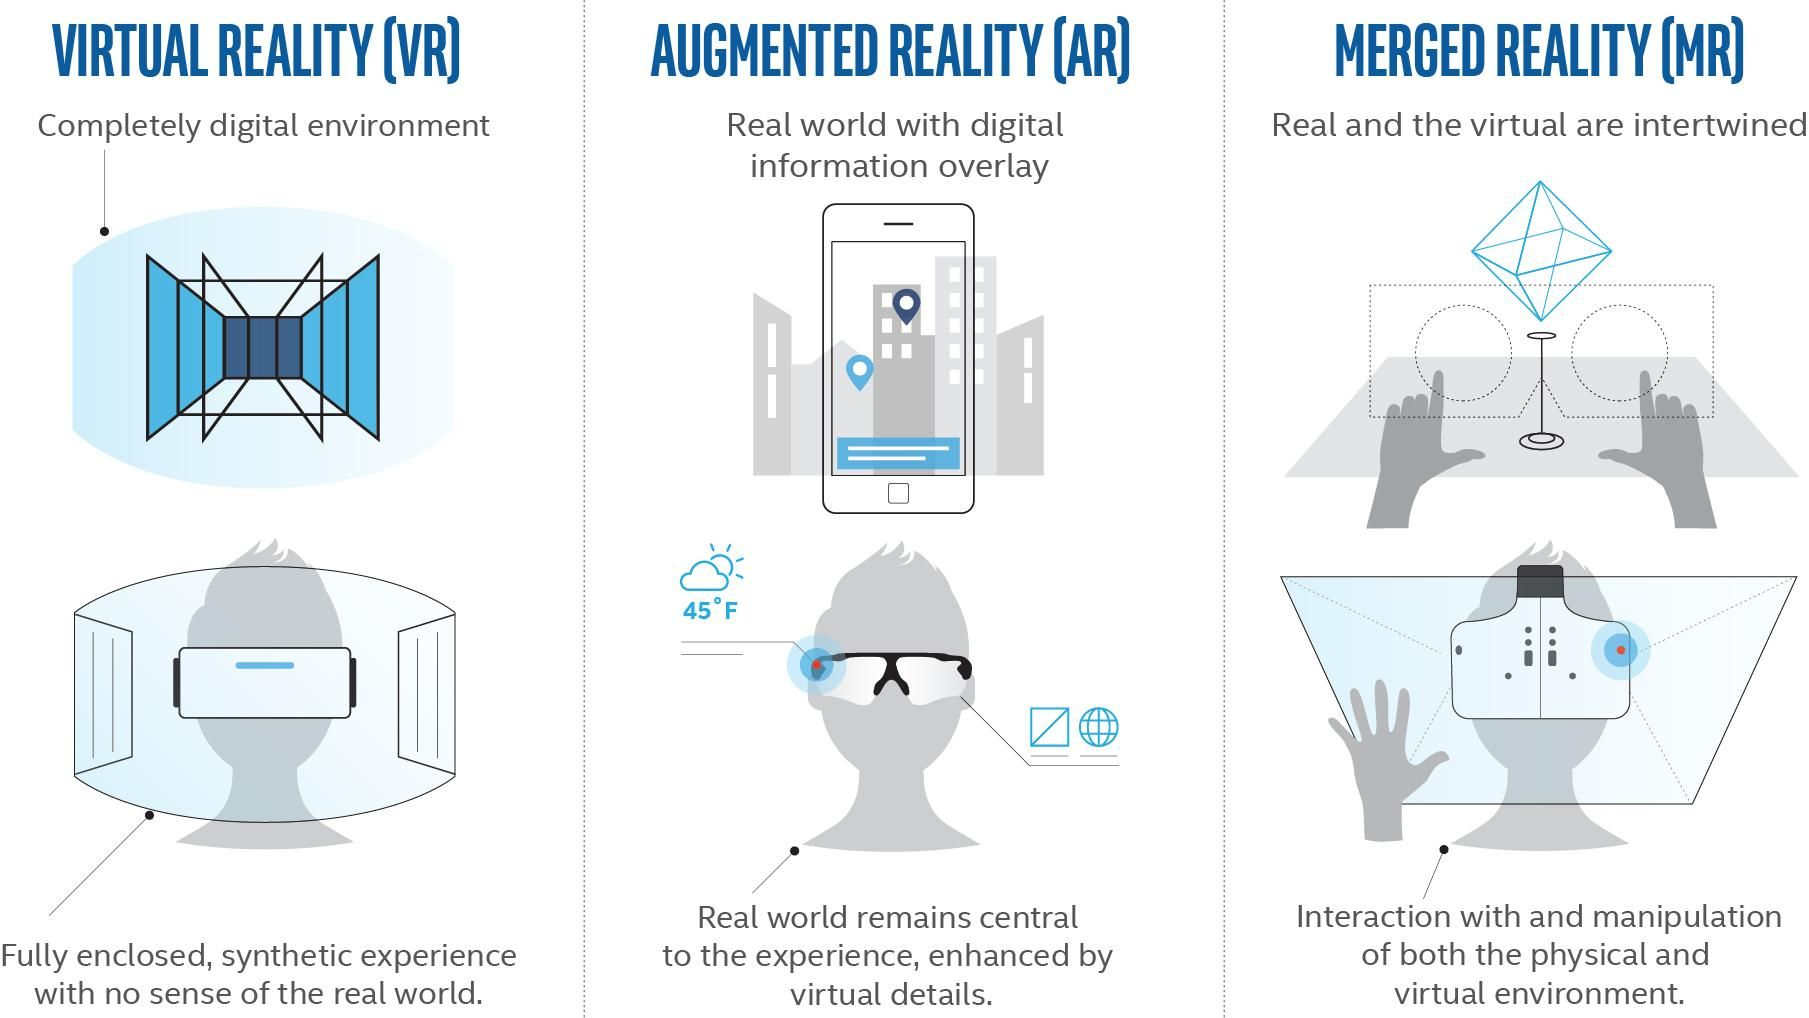 Augmented Reality, Virtual Reality, and Mixed Reality - Differences and Similarities